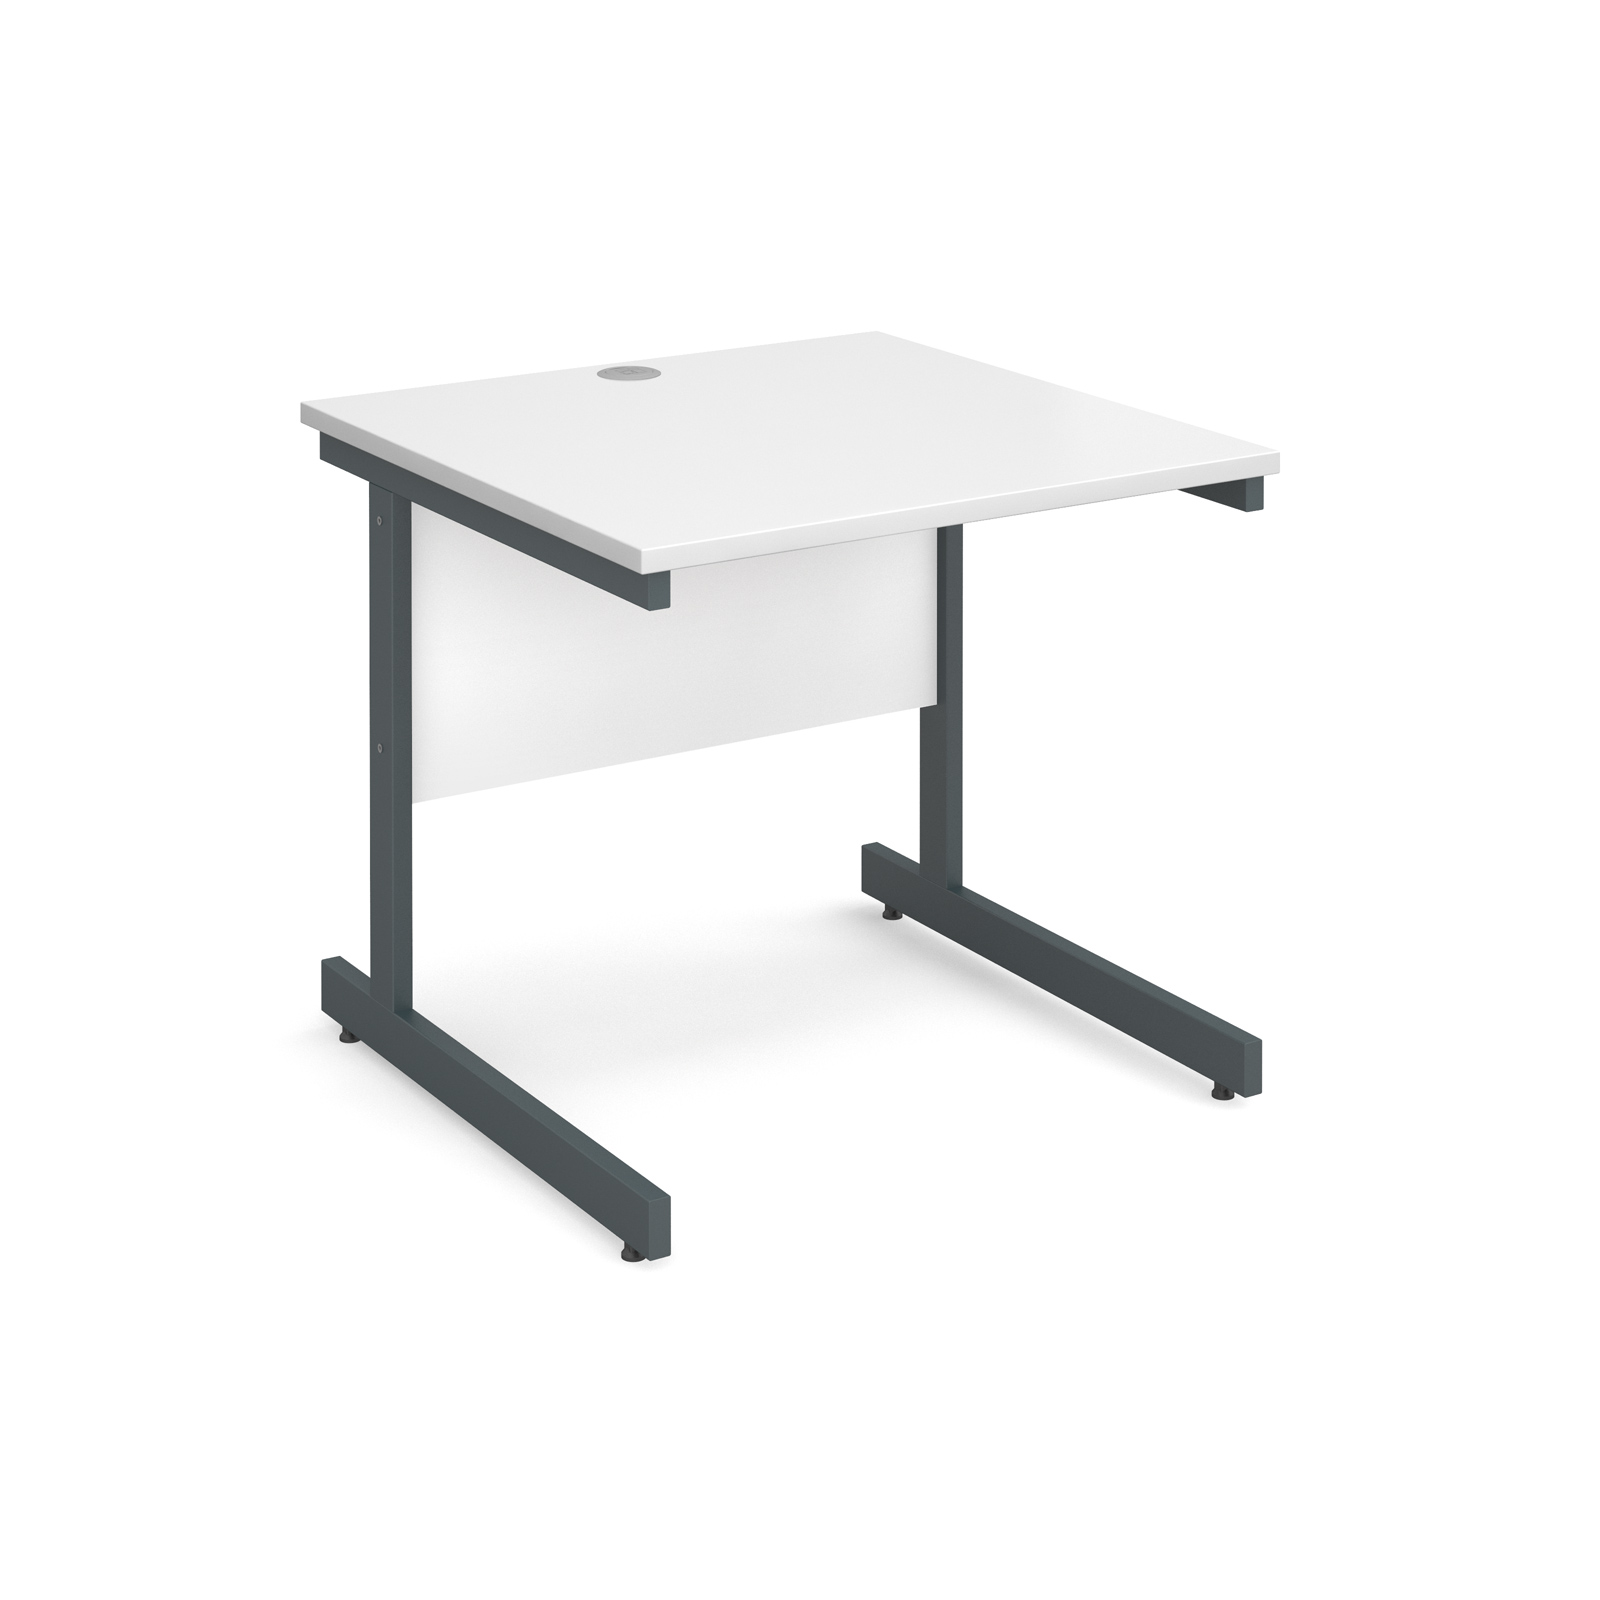 Contract 25 straight desk 800mm x 800mm - graphite cantilever frame, white top